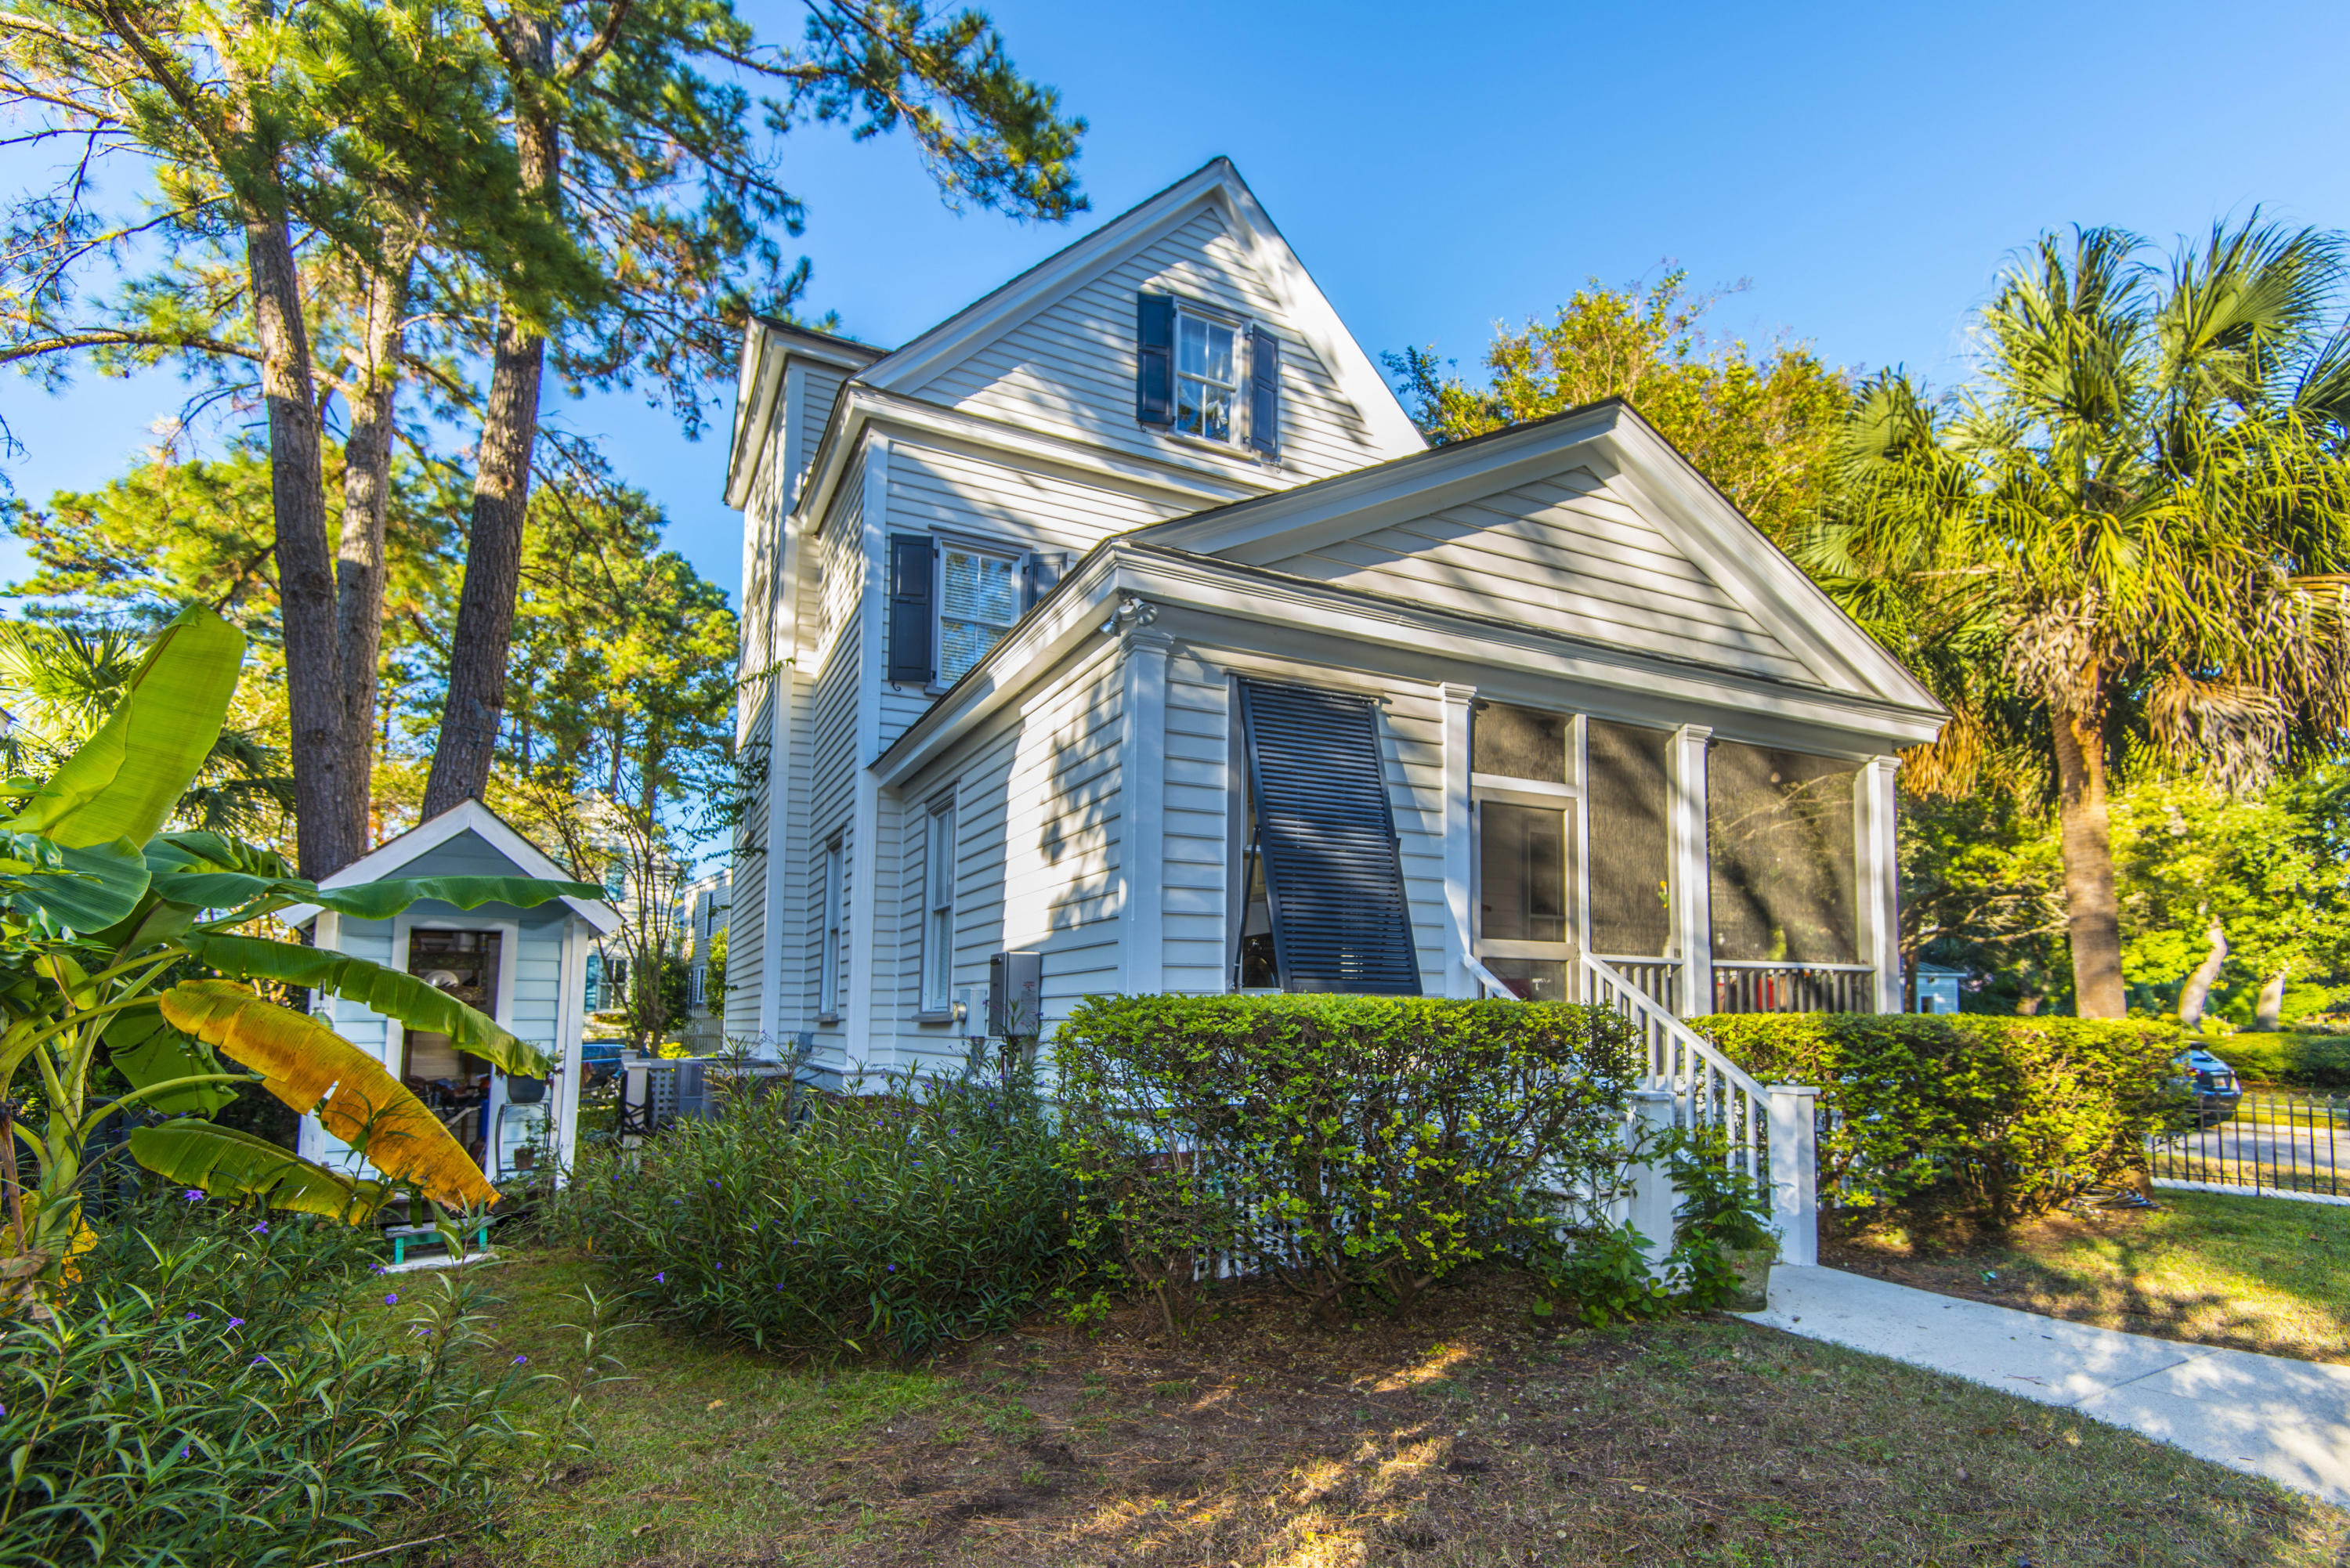 Home for sale 28 Prescient Street, Ion, Mt. Pleasant, SC